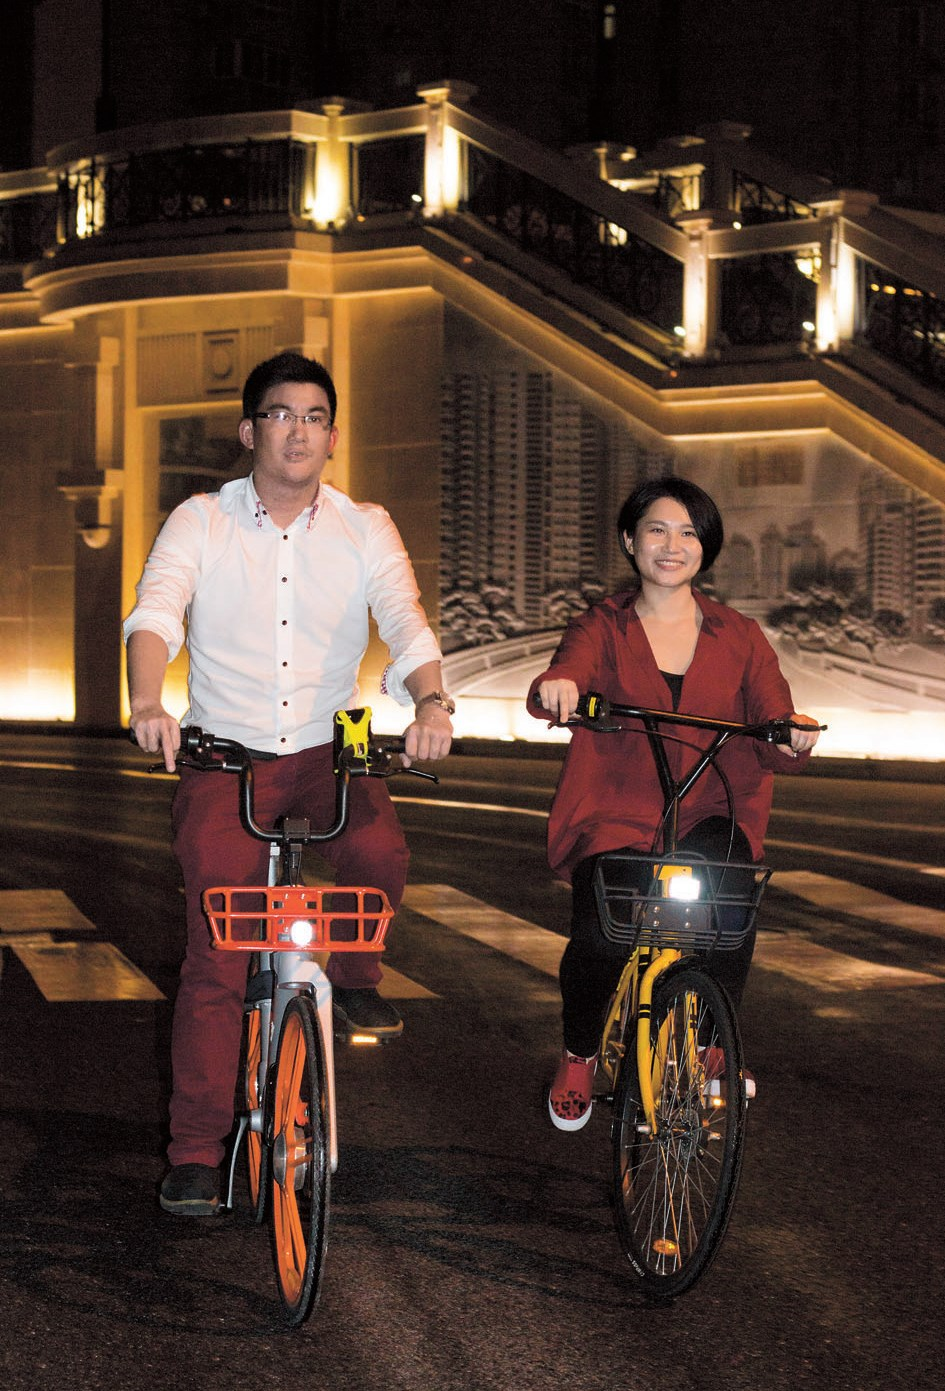 Francis Hau (left), founder of the Shanghai Bike Ride group, and his friend Joanna Zhang enjoy an evening ride on Guangfu Road W. in Putuo District.